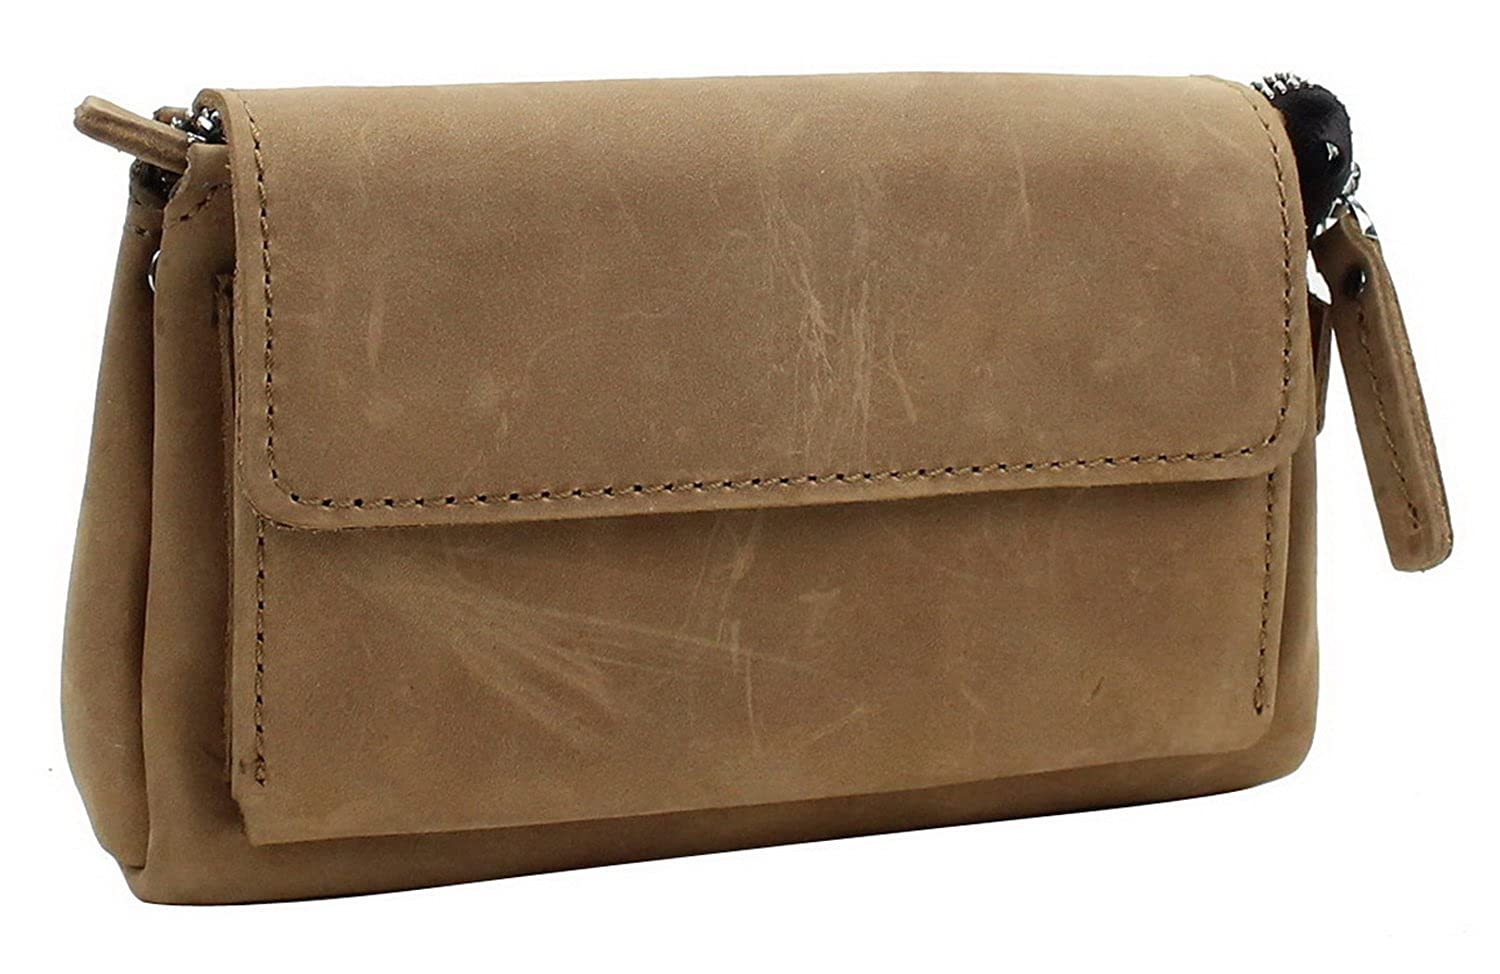 "8.5"" Cowhide Leather Large Clutch Bag LH01- Nature Brown"